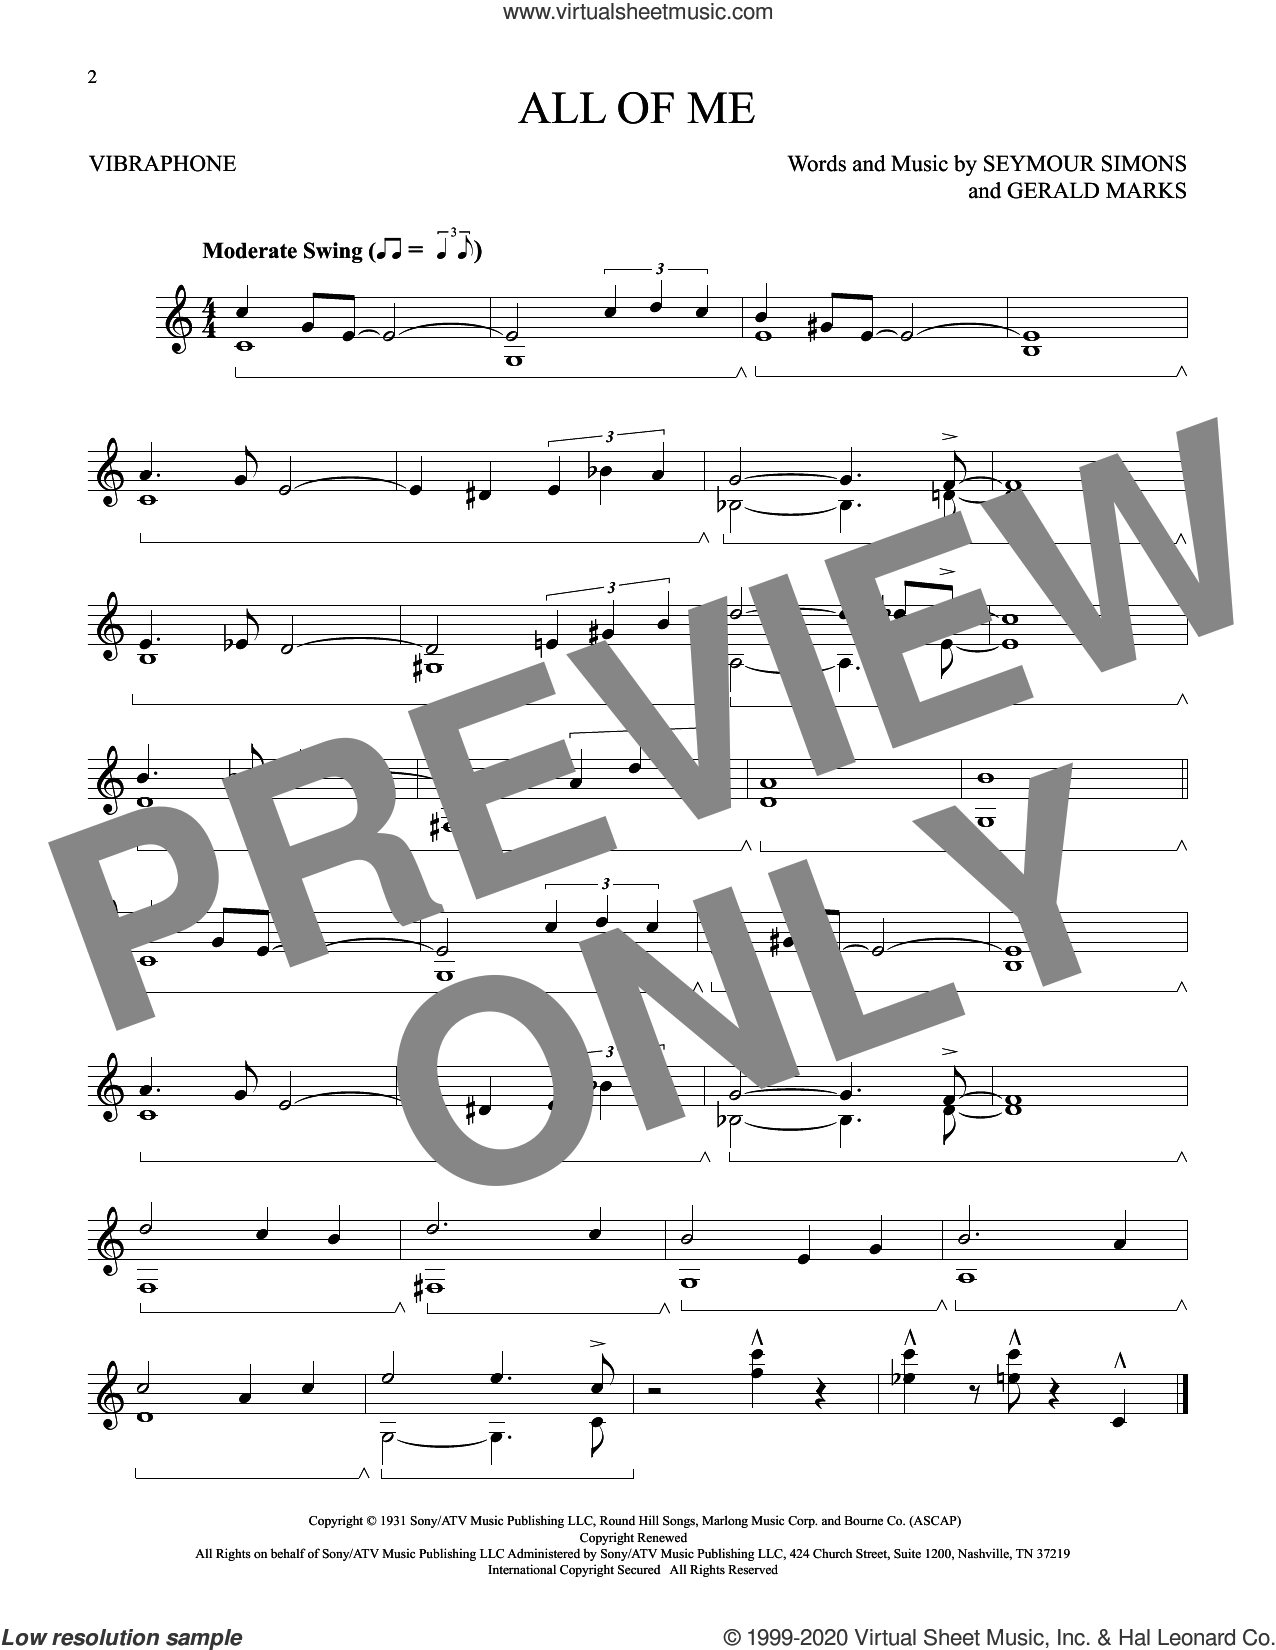 All Of Me sheet music for Vibraphone Solo by Seymour Simons, Gerald Marks and Seymour Simons and Gerald Marks, intermediate skill level